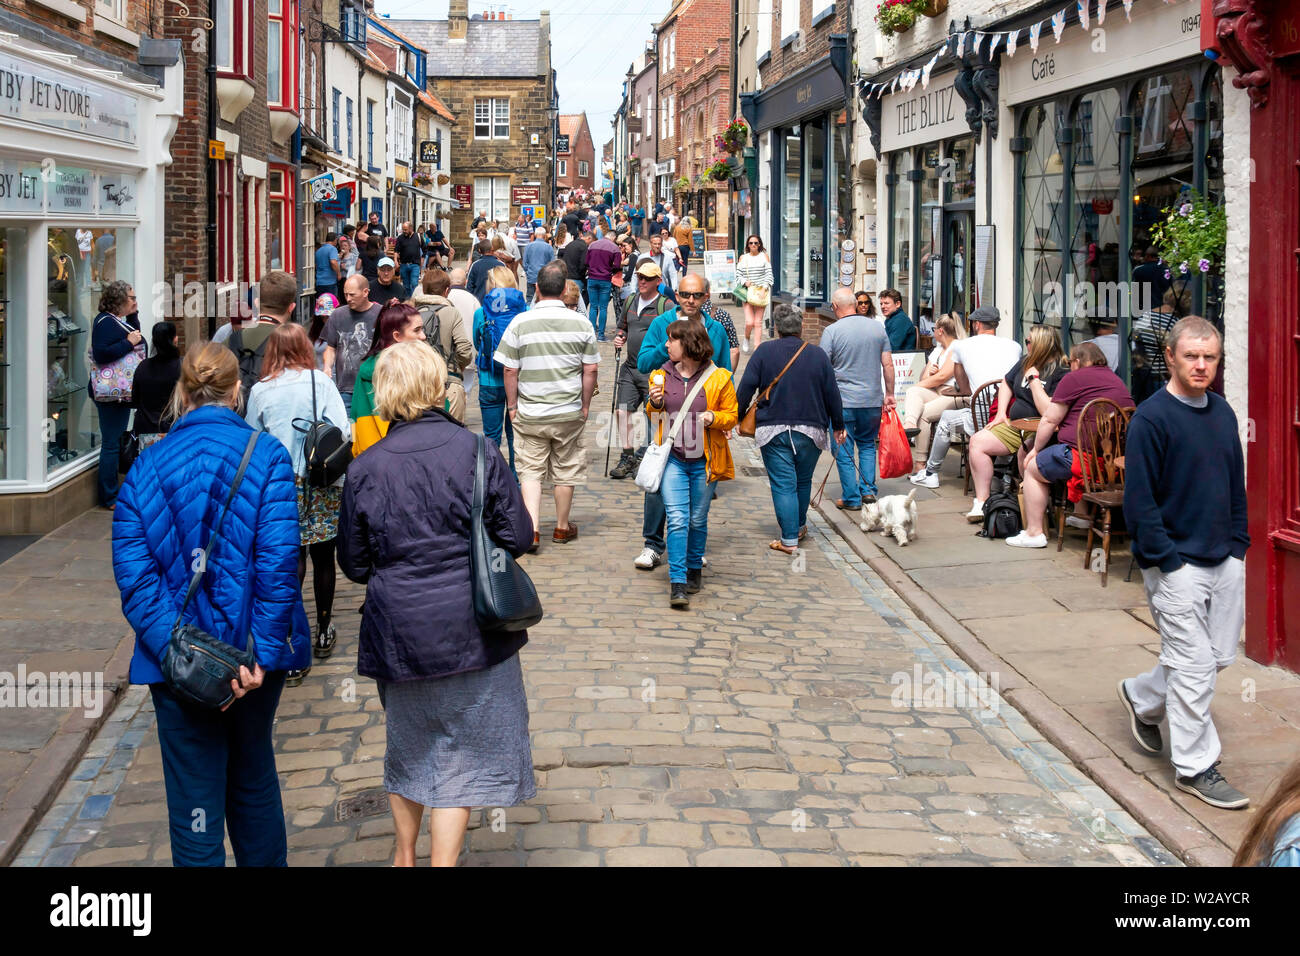 Historic pedestrianized Church Street in Whitby North Yorkshire UK busy with tourists in early summer - Stock Image